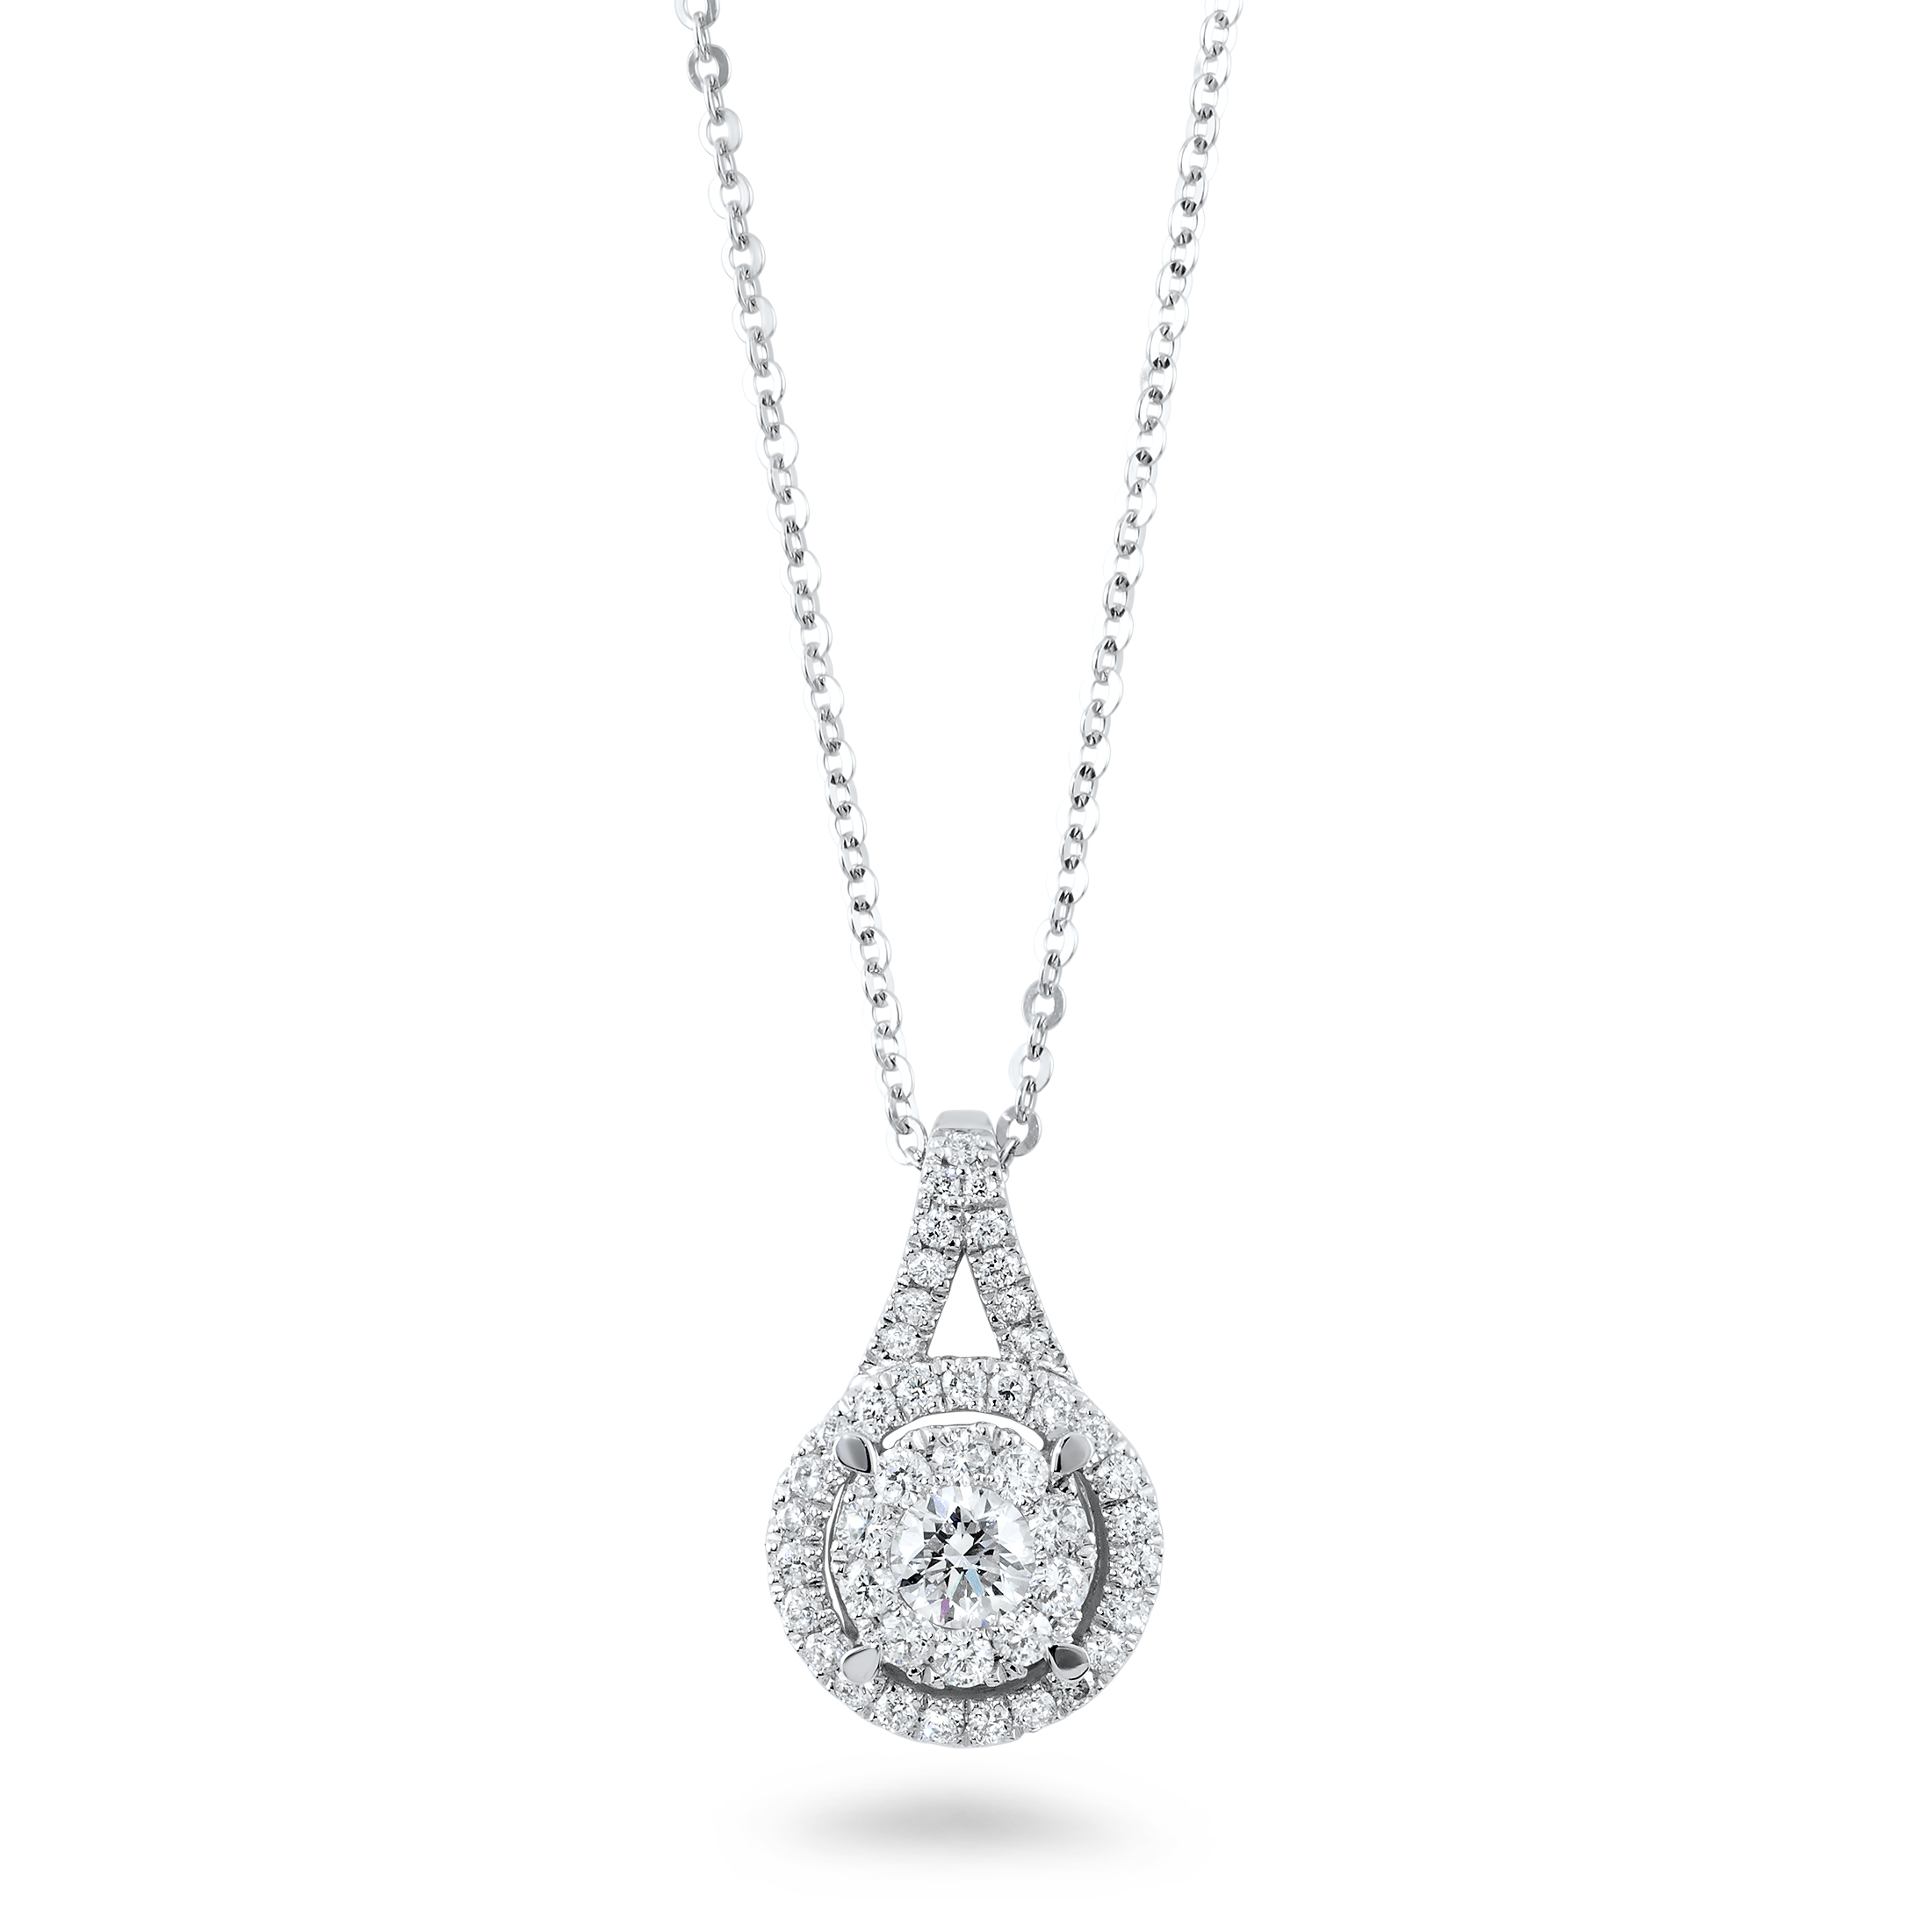 Diamond 2018 Png - Pendant-Necklace-Transparent-PNG - Malloves Jewelers